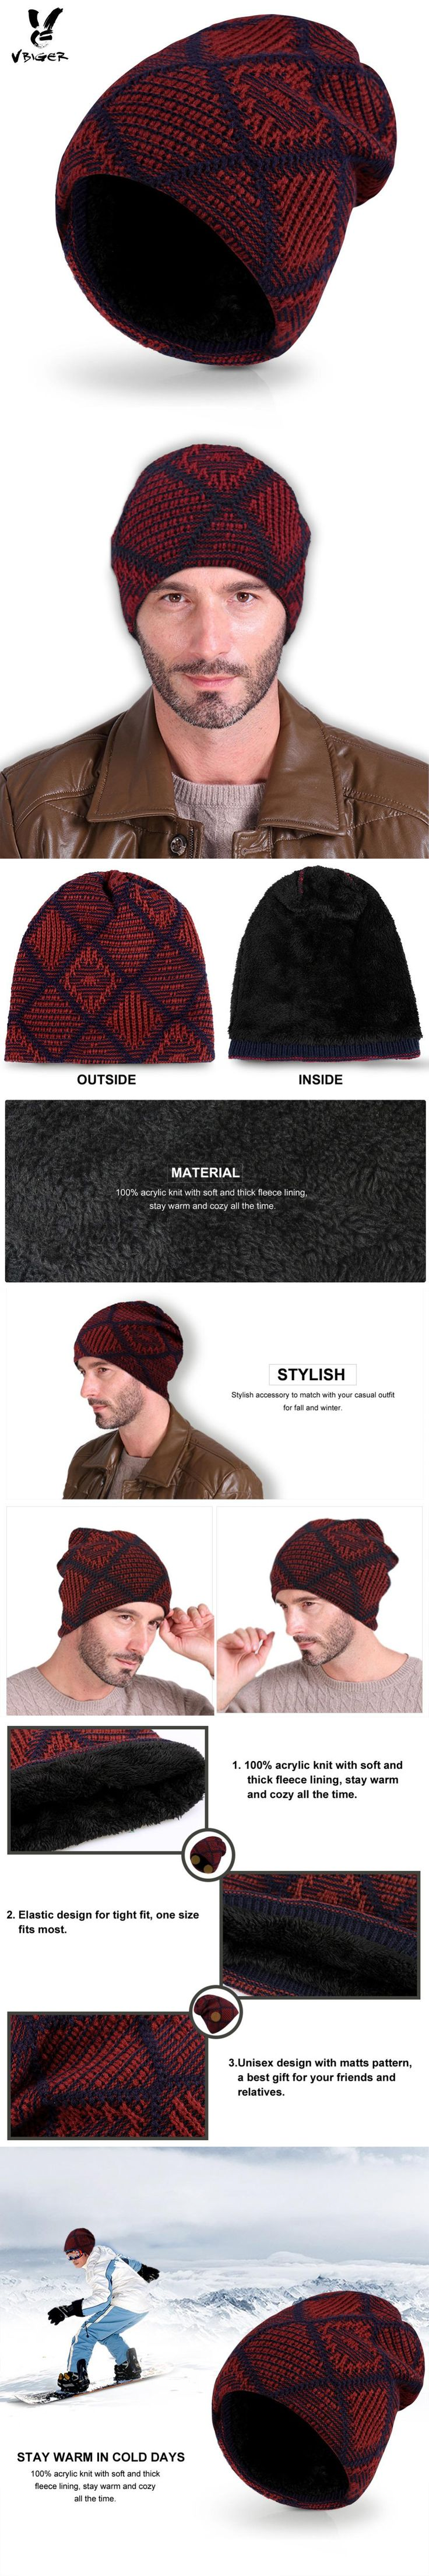 Vbiger Winter Hat Slouchy Skullies Beanies Warm Knitted Skull Cap Lined Ski Snowboard Hat with Thick Fleece Lining for Men Women